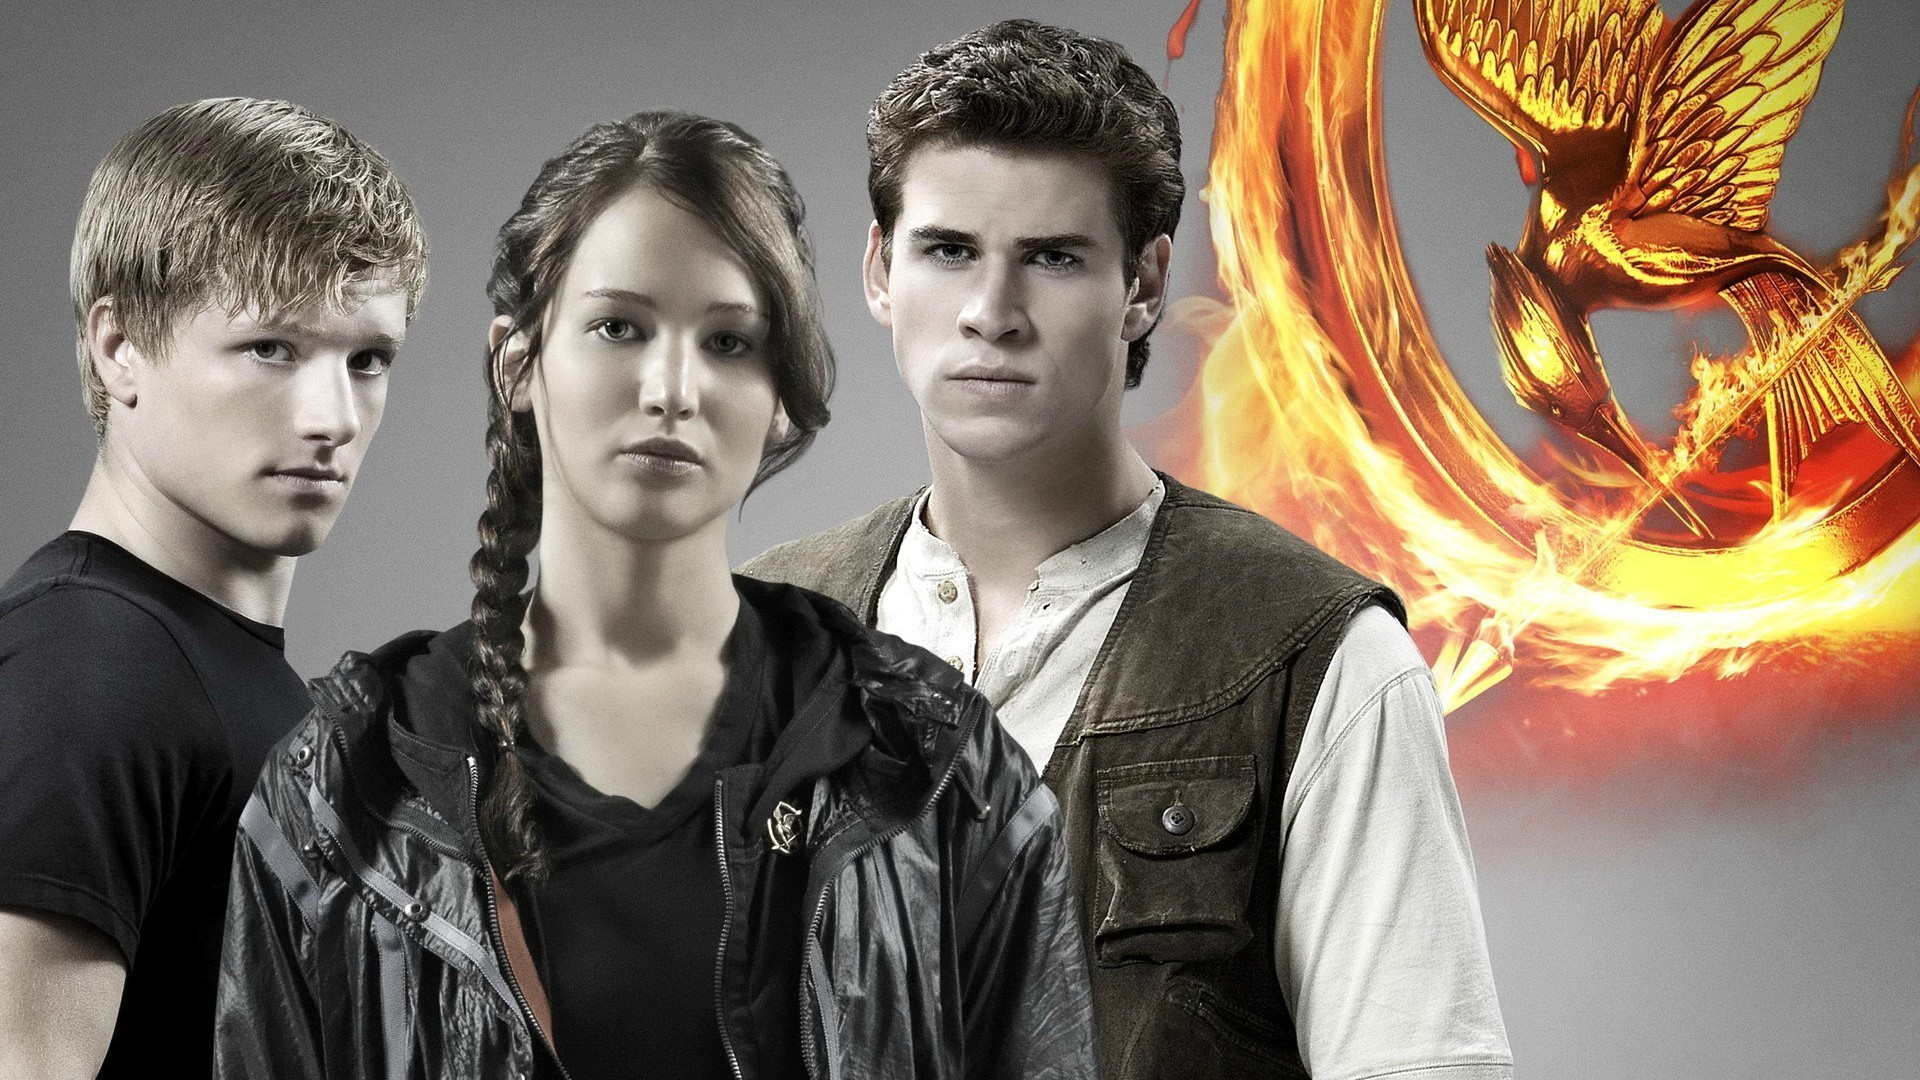 1920x1080 movies the hunger games jennifer lawrence liam hemsworth Wallpapers HD /  Desktop and Mobile Backgrounds